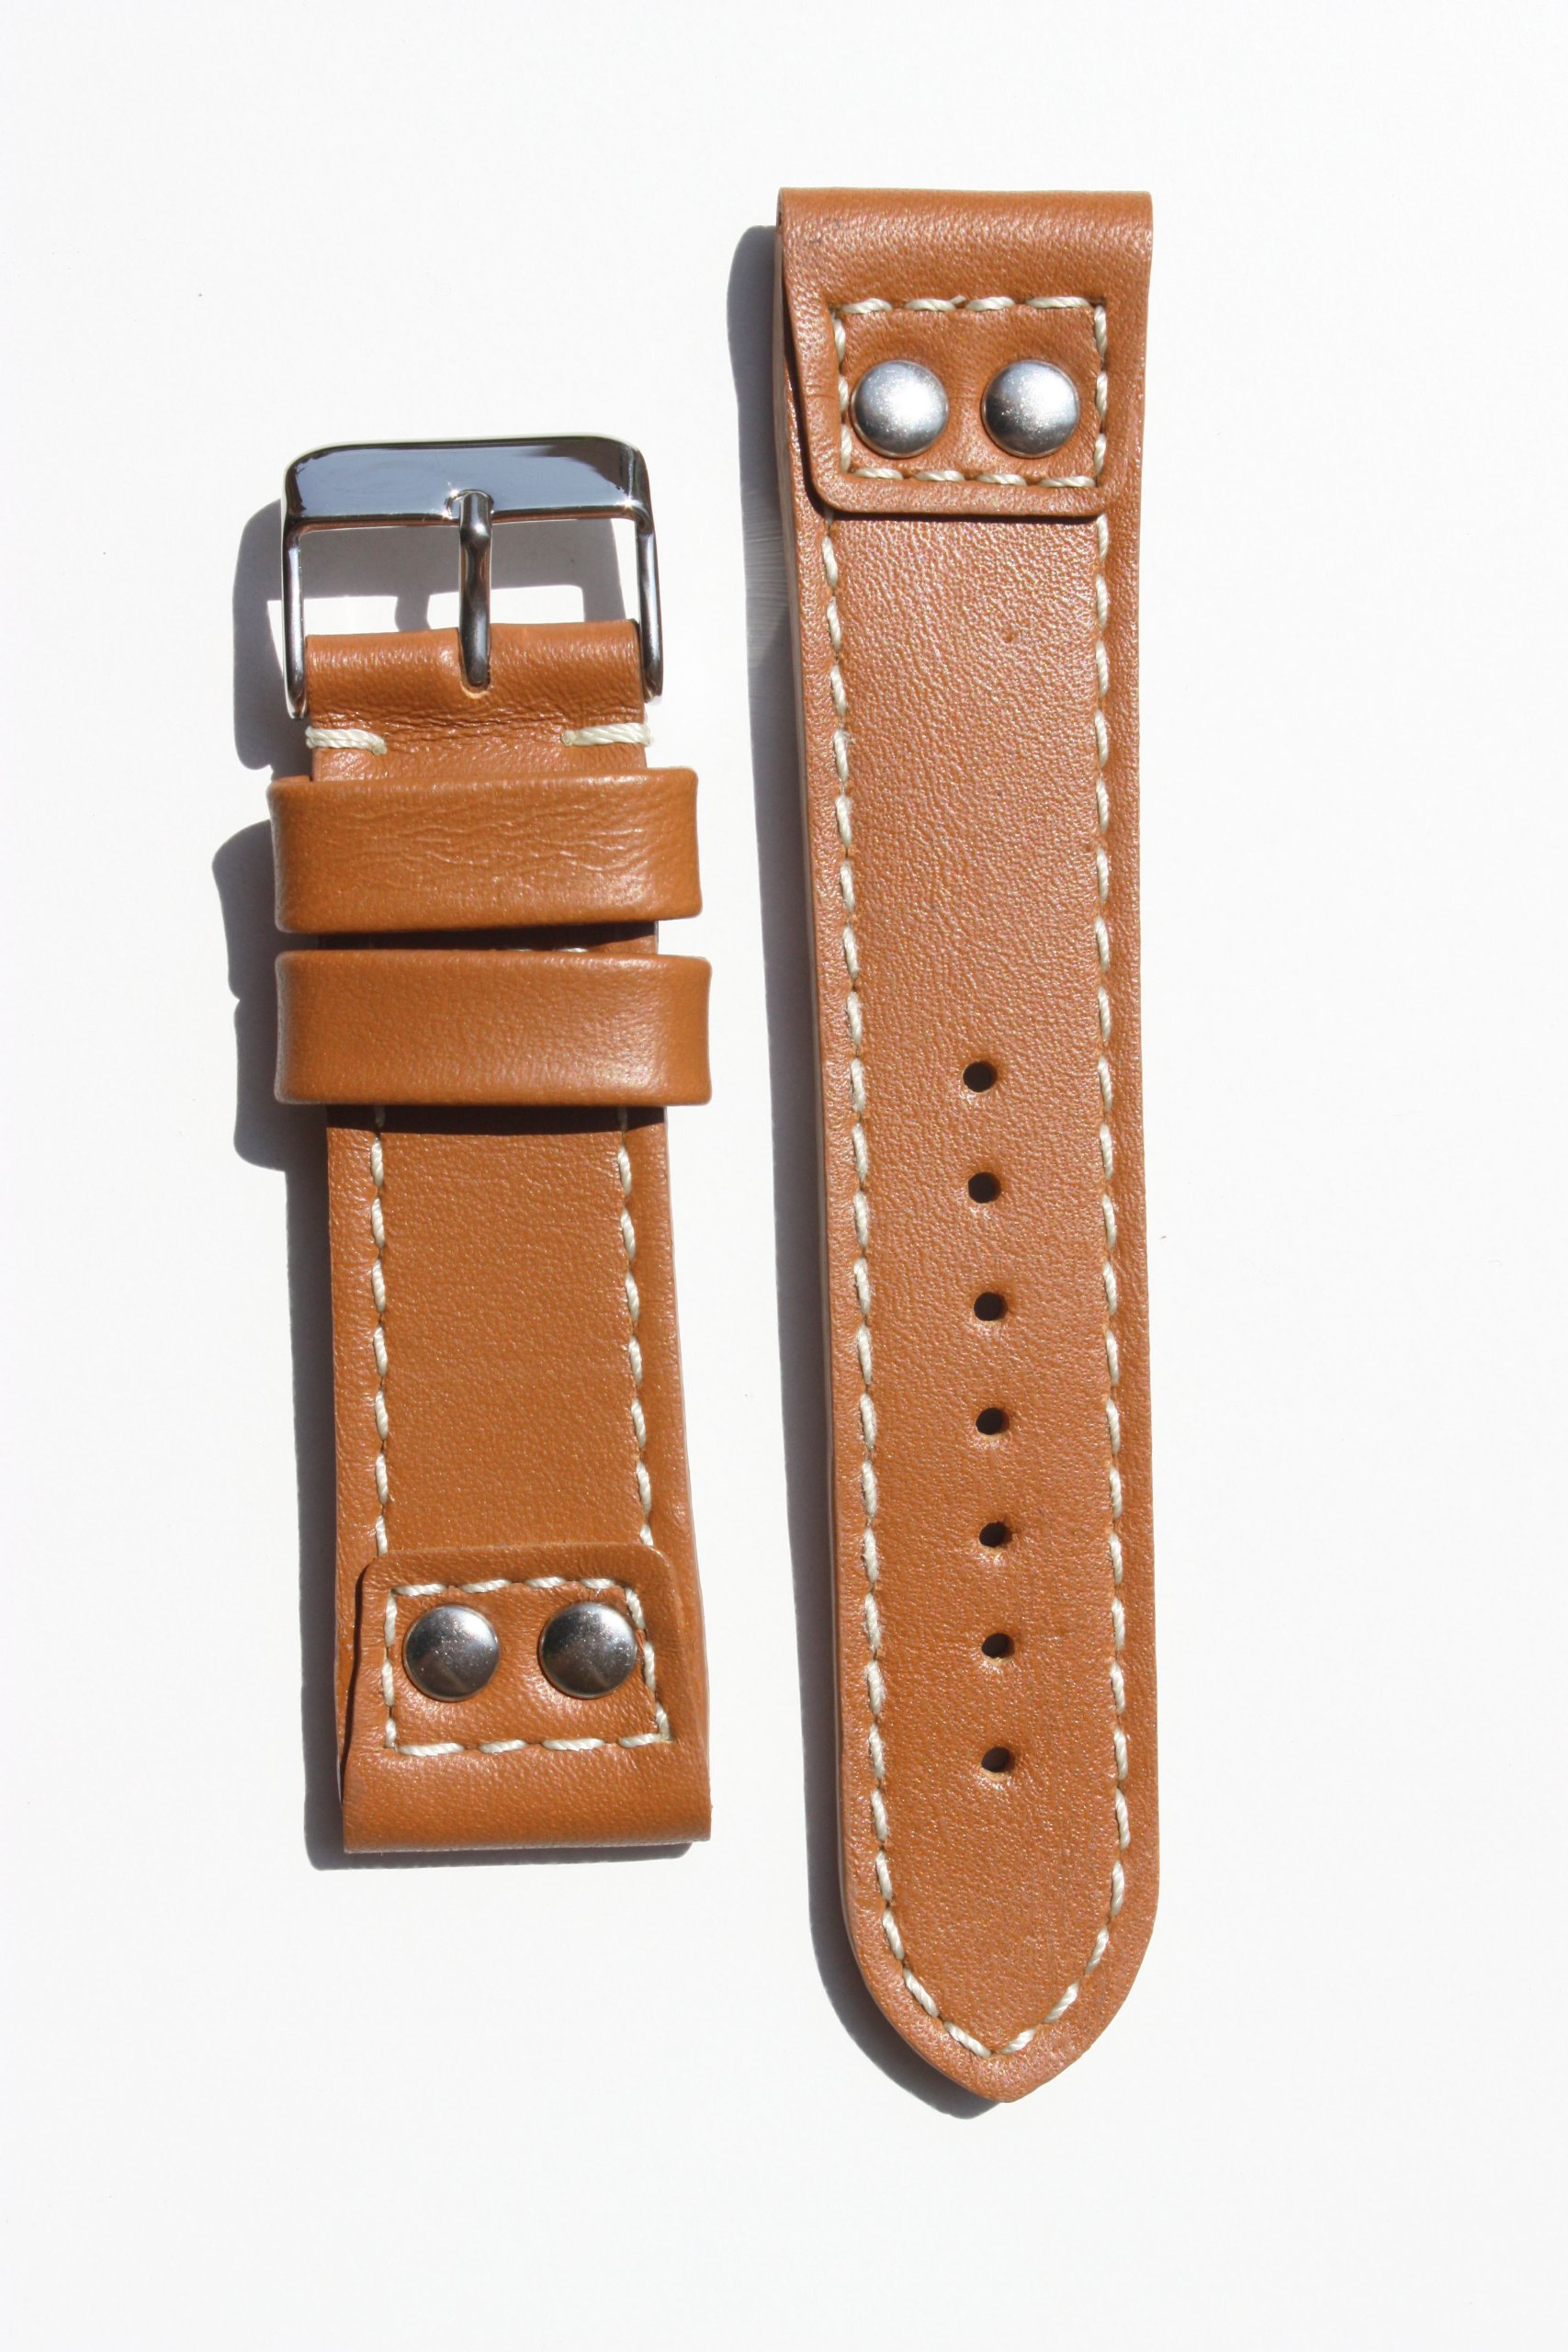 Panerai 22mm Tan Pilot Style Watchband with Contrast Stitch and Water Resistant Lining